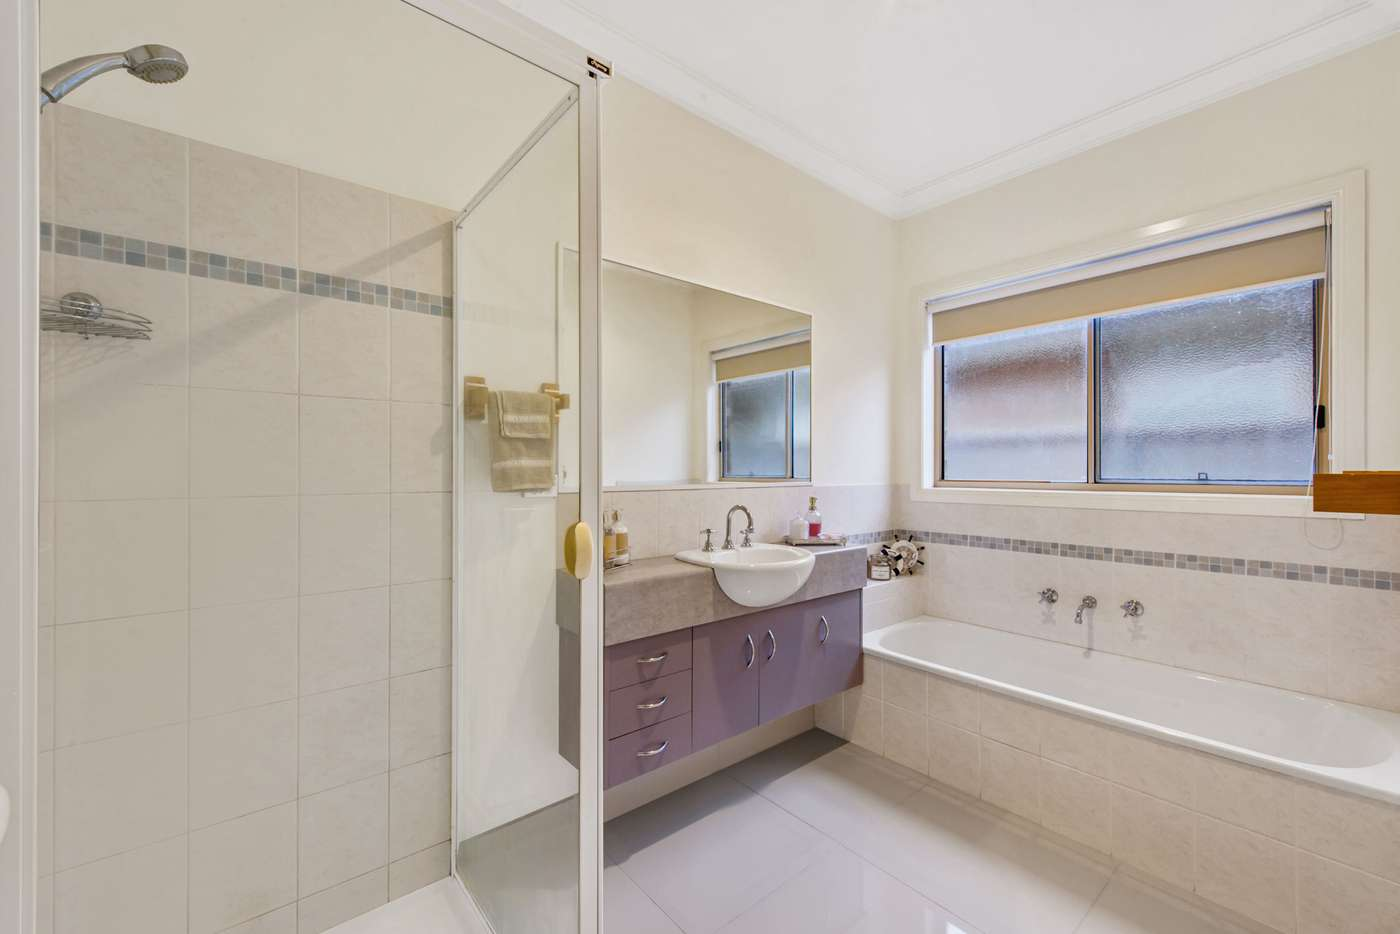 Fifth view of Homely house listing, 14 Lauricella Place, Caroline Springs VIC 3023